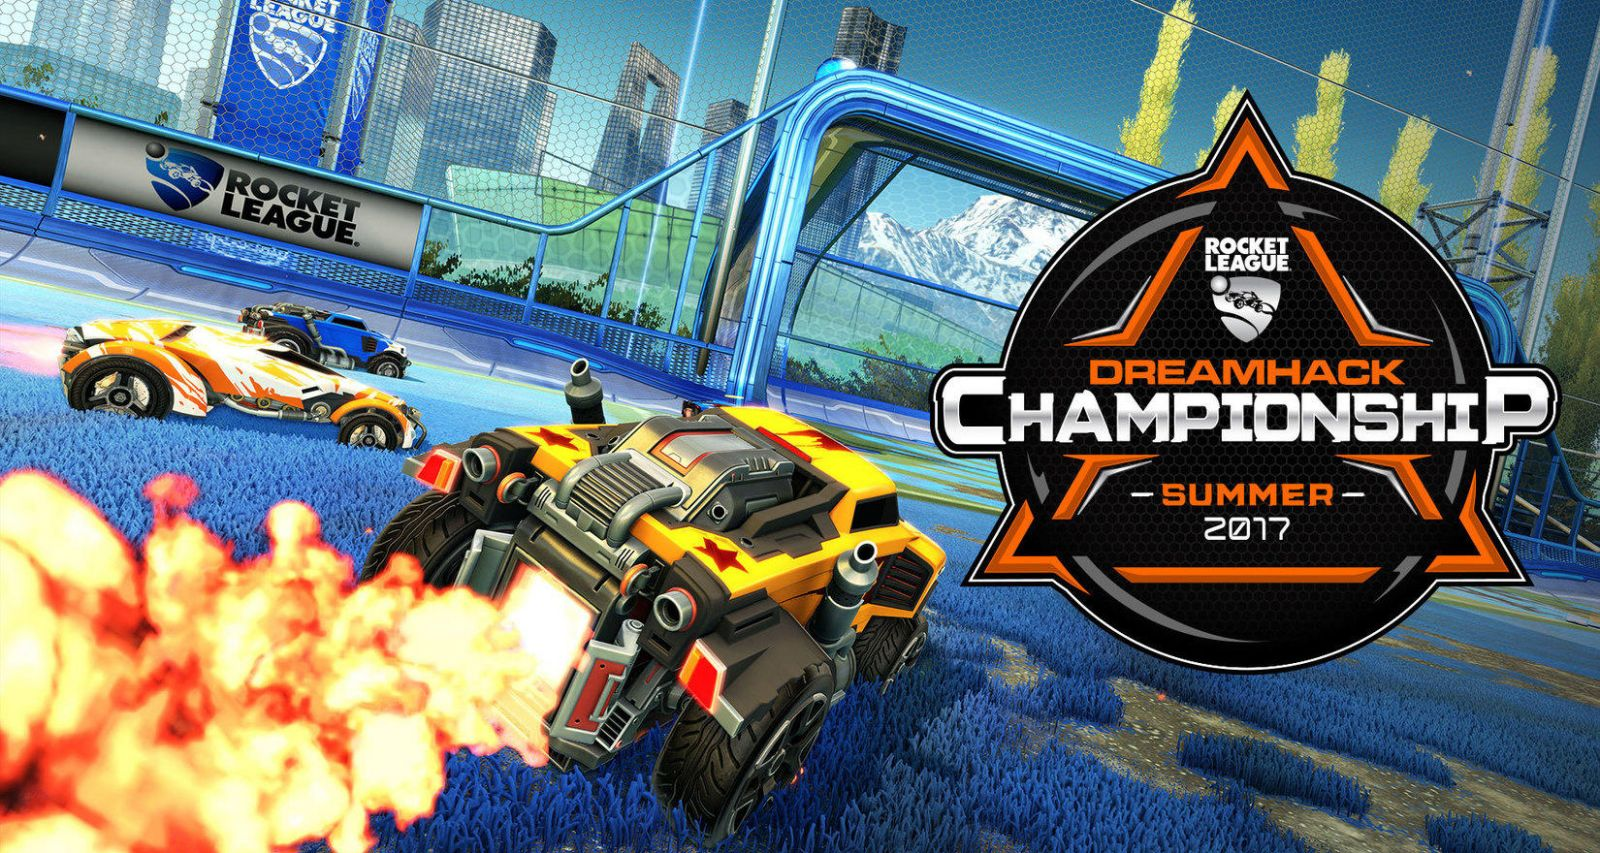 DreamHack Summer Rocket League Championship & Nintendo Switch Console